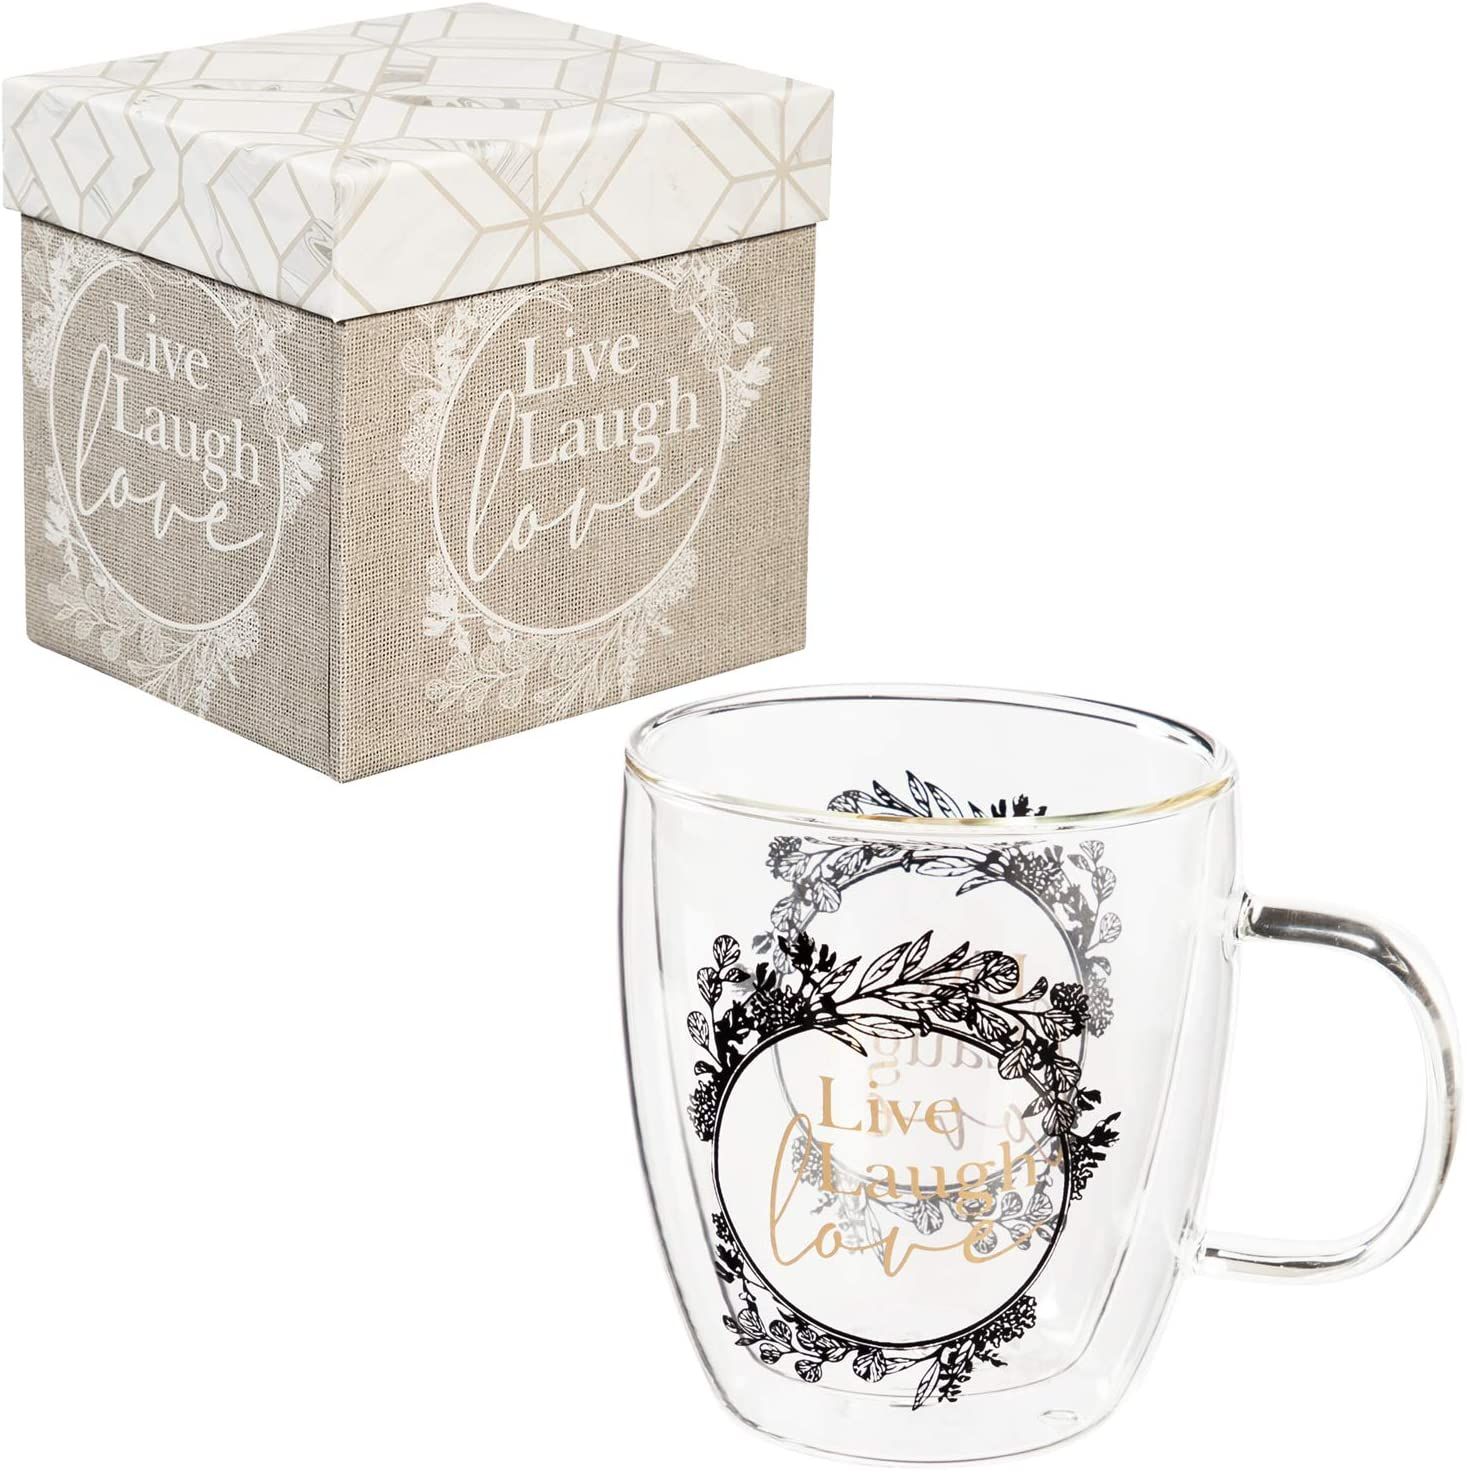 Cypress Home Beautiful Live Laugh Love Double Wall Glass Cafe Cup - 5 x 4 x 5 Inches Homegoods and Accessories for Every Space